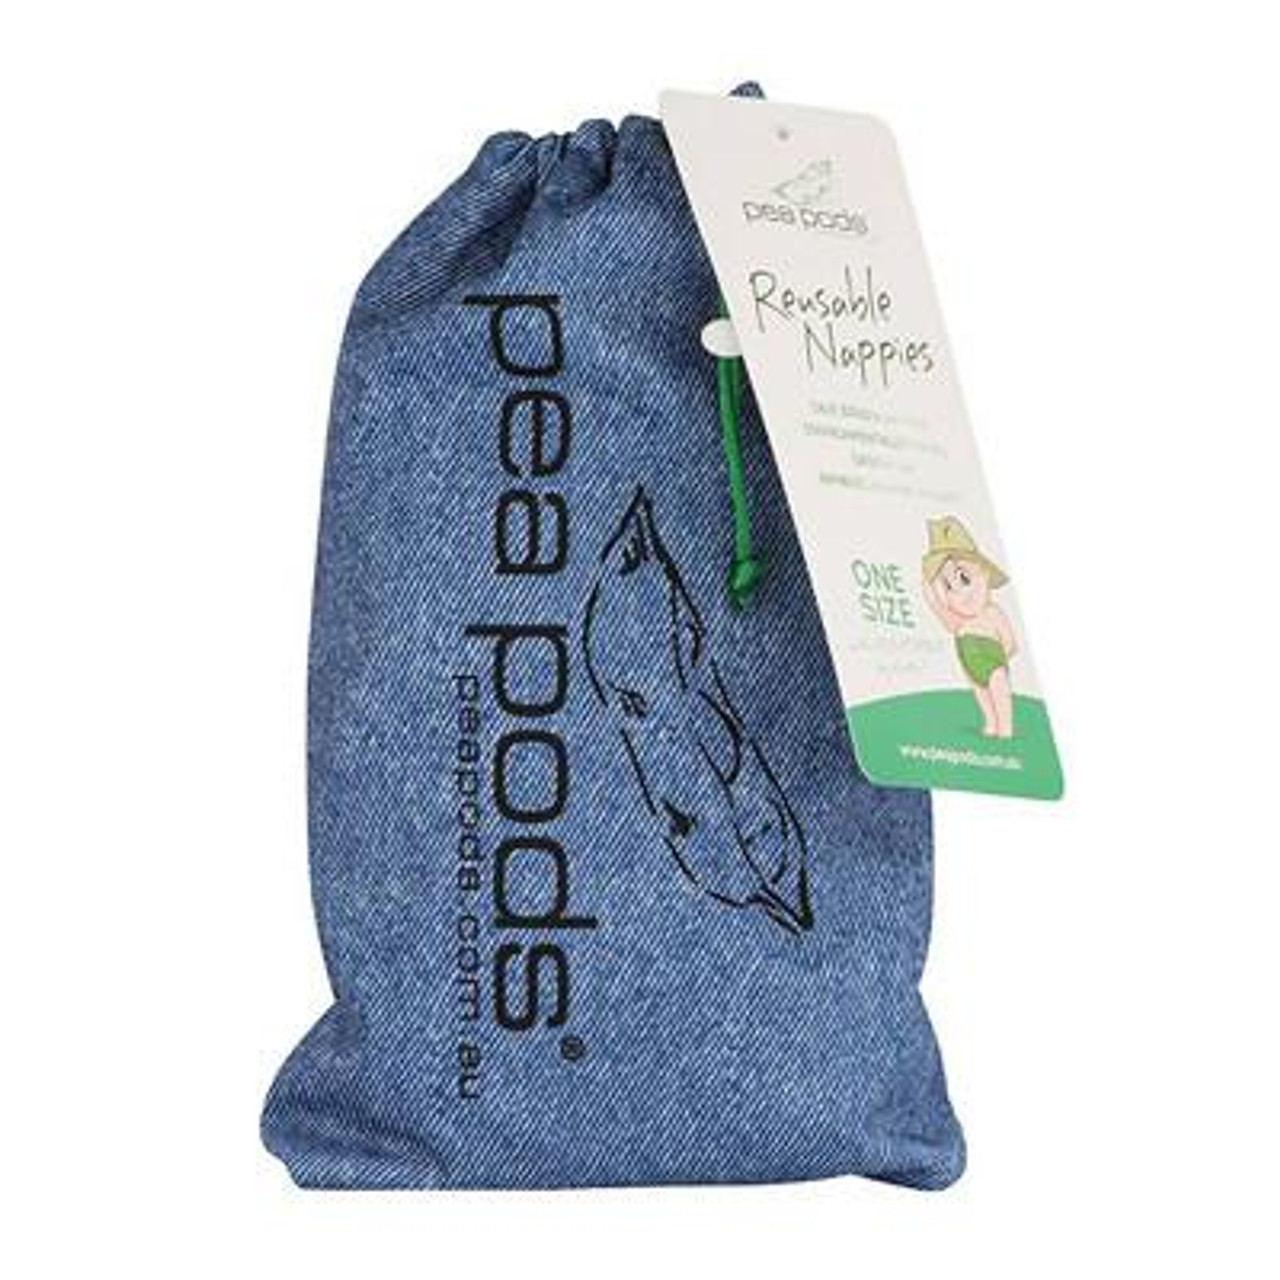 Pea Pods Modern Cloth Nappies One Size Fits Most at Baby Barn - Denim Print